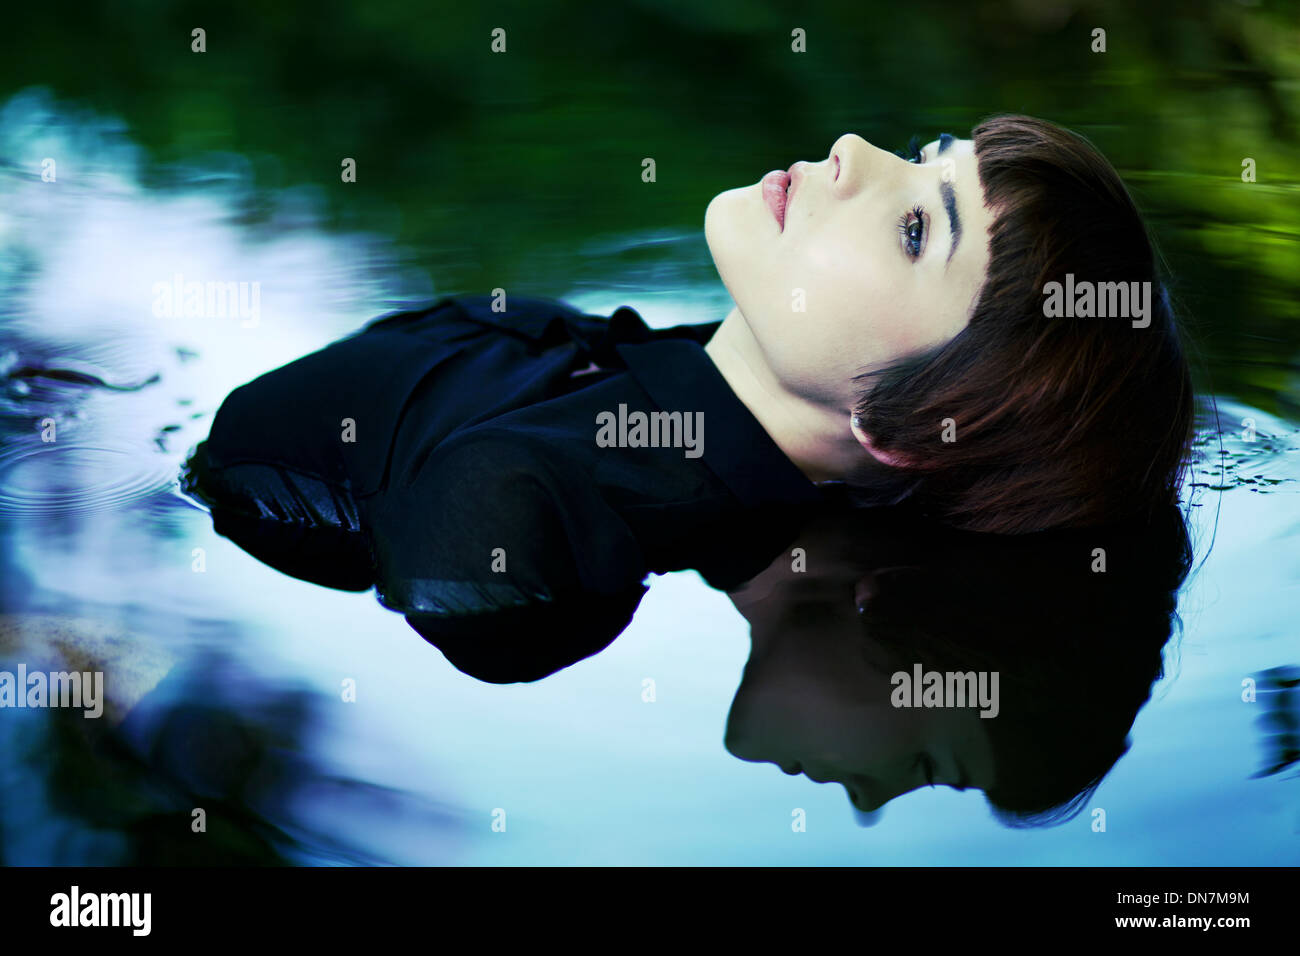 Young woman sitting in water, portrait - Stock Image